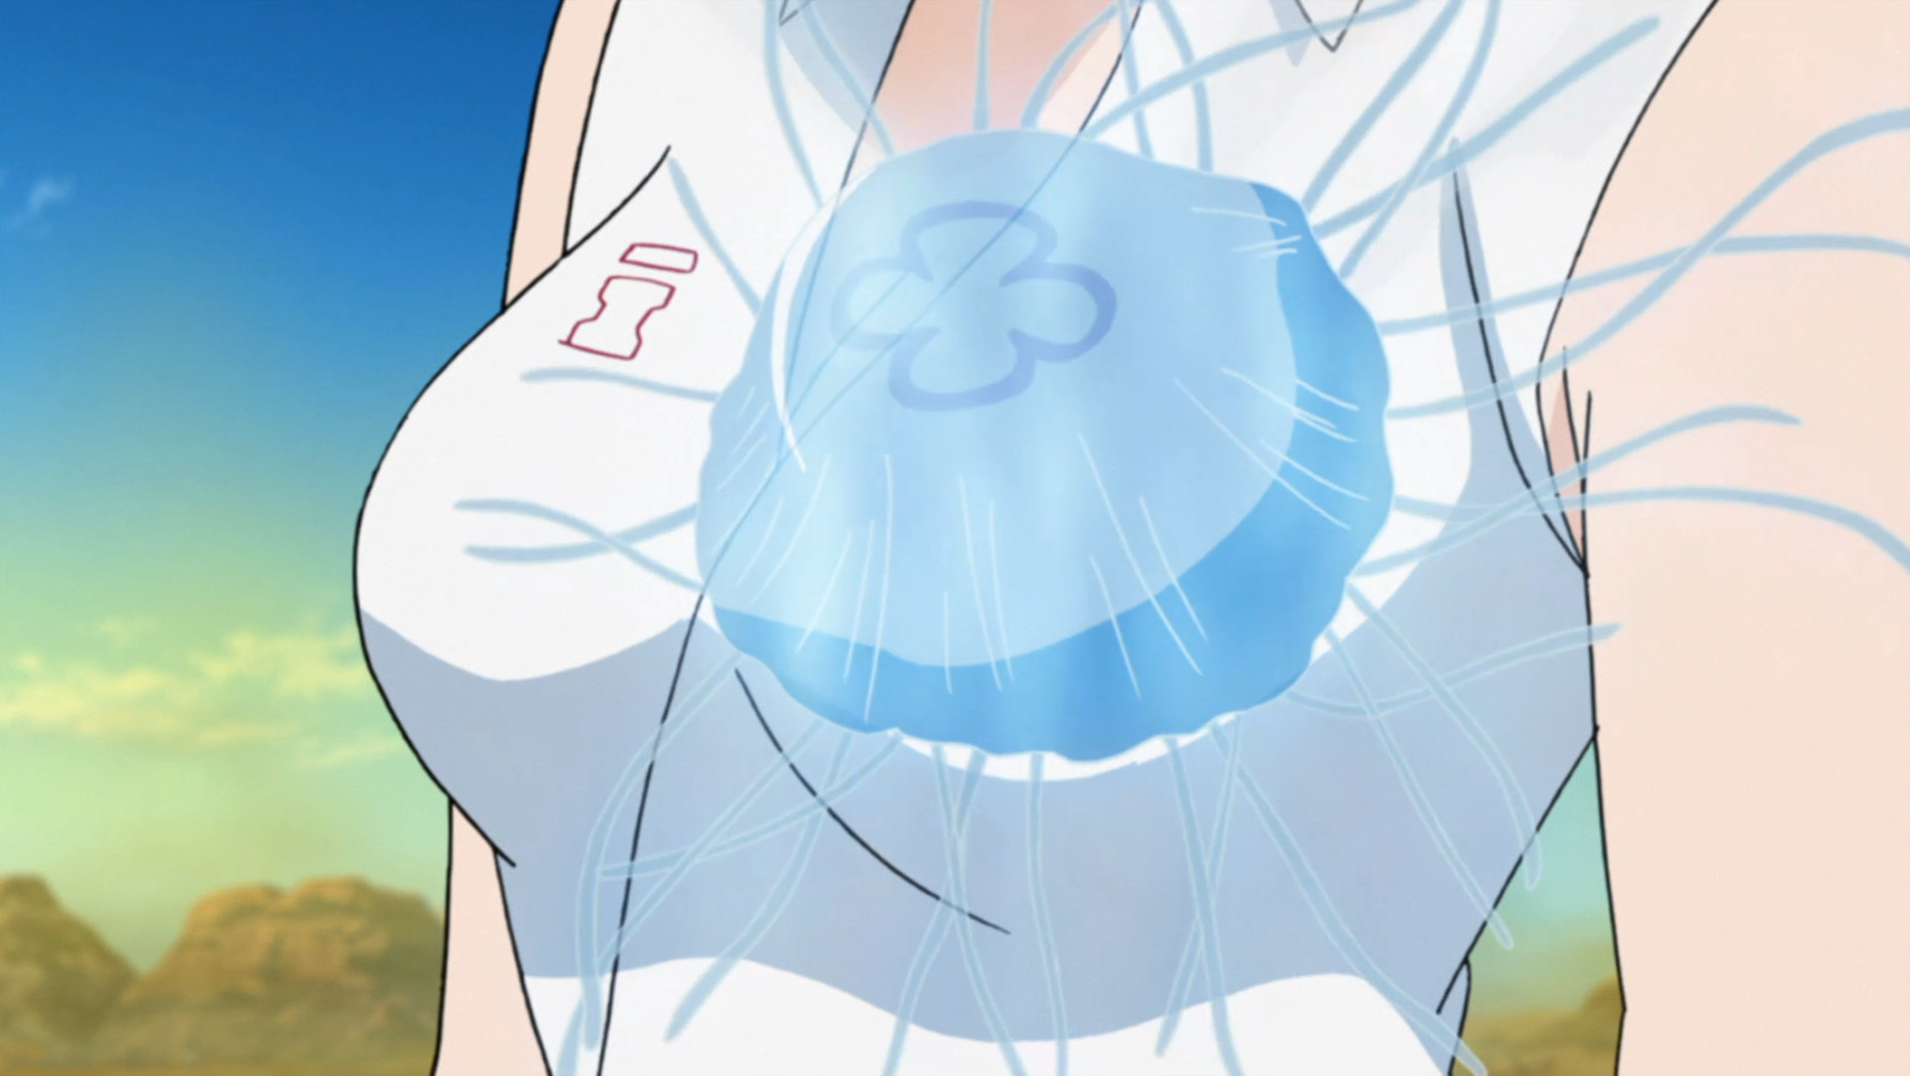 medical water release jellyfish narutopedia fandom powered by